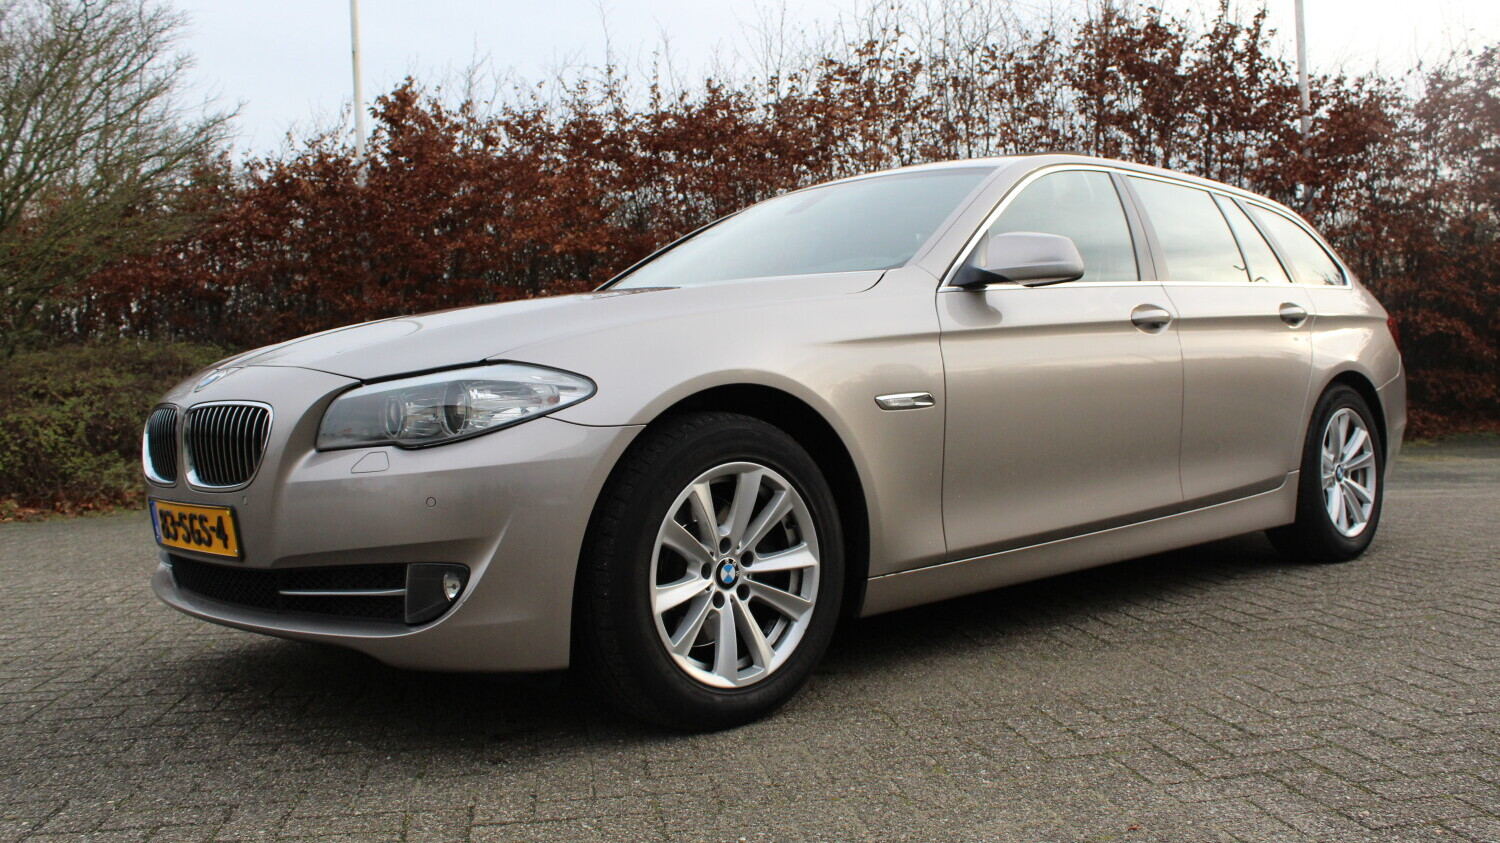 BMW 5-serie Station 2011 83-SGS-4 1